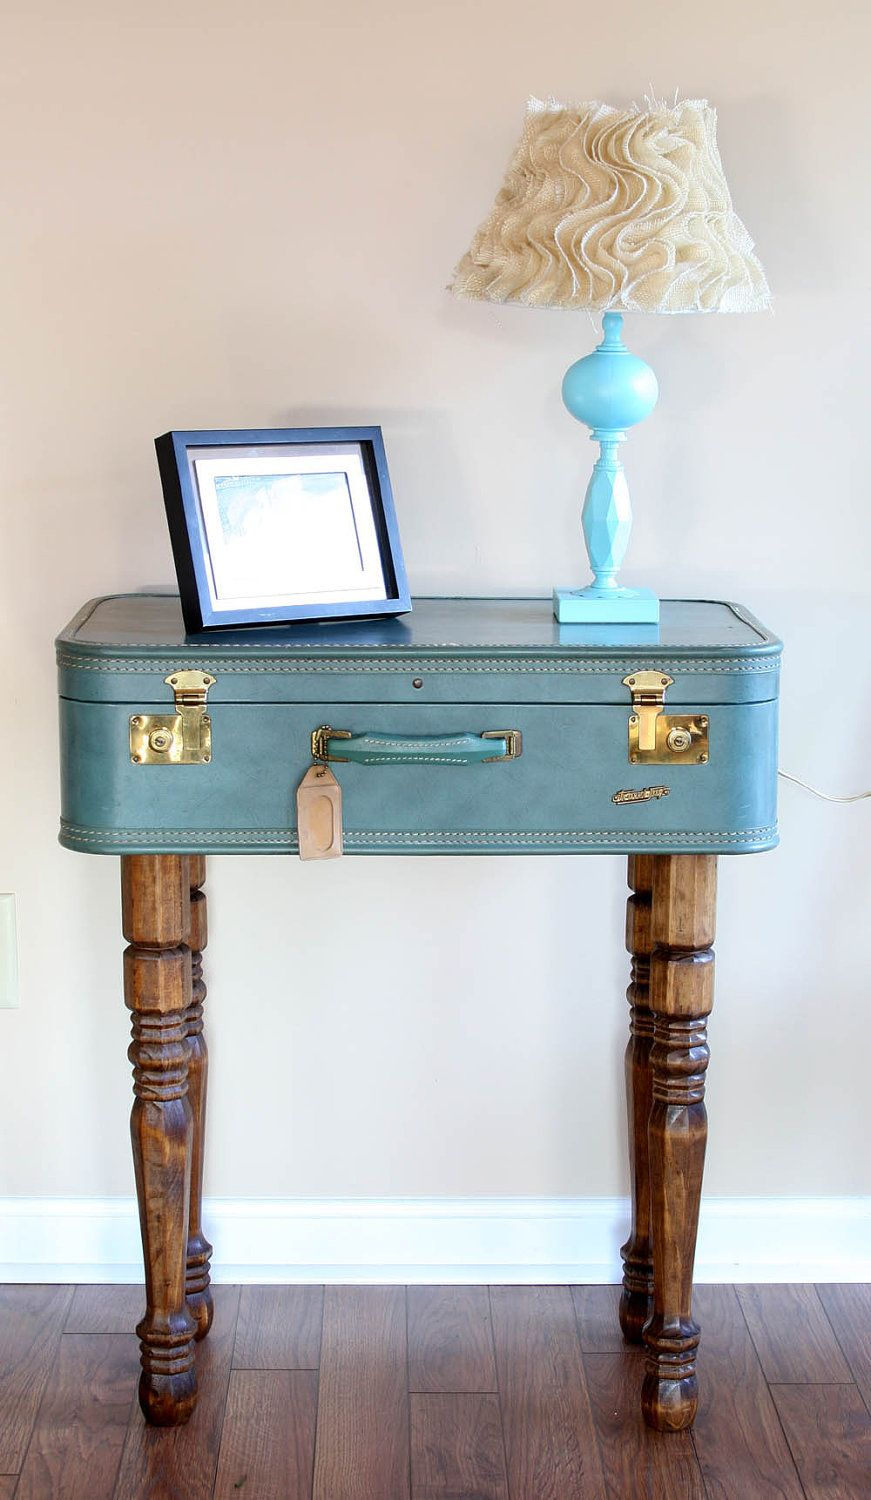 Genial Vintage Suitcase Table .... Use For Wedding Cards U0026 Then Use In The